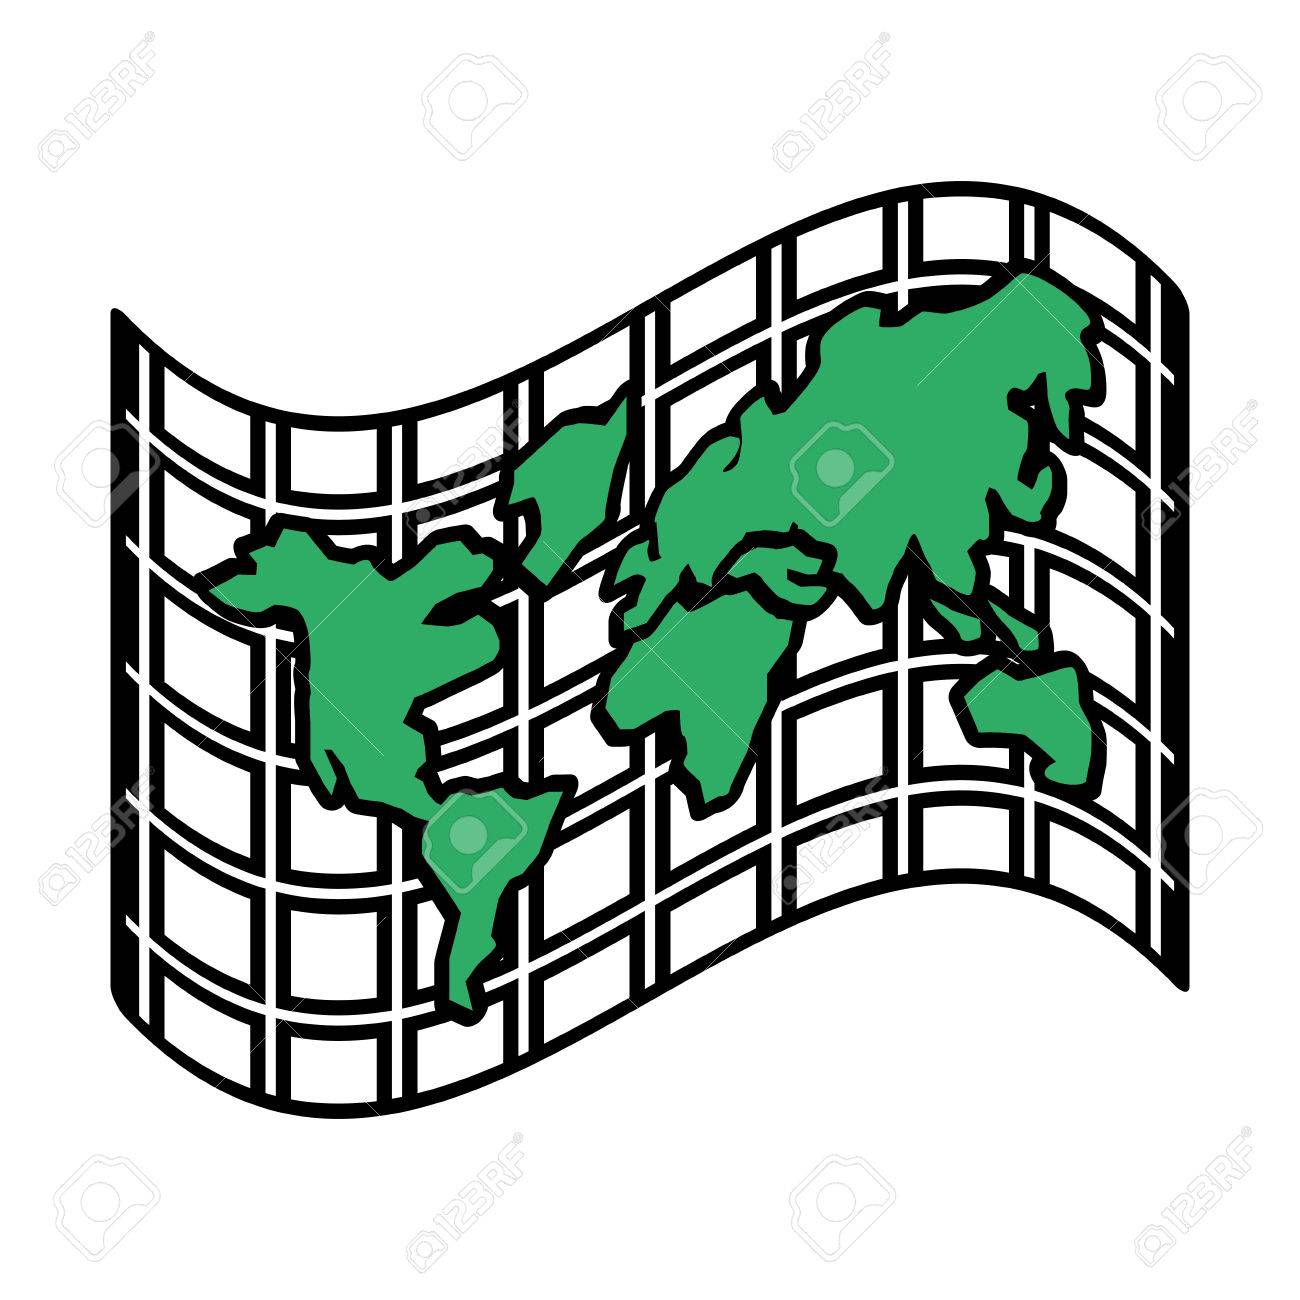 Outline world map location position vector illustration eps 10 outline world map location position vector illustration eps 10 stock vector 66935036 gumiabroncs Gallery